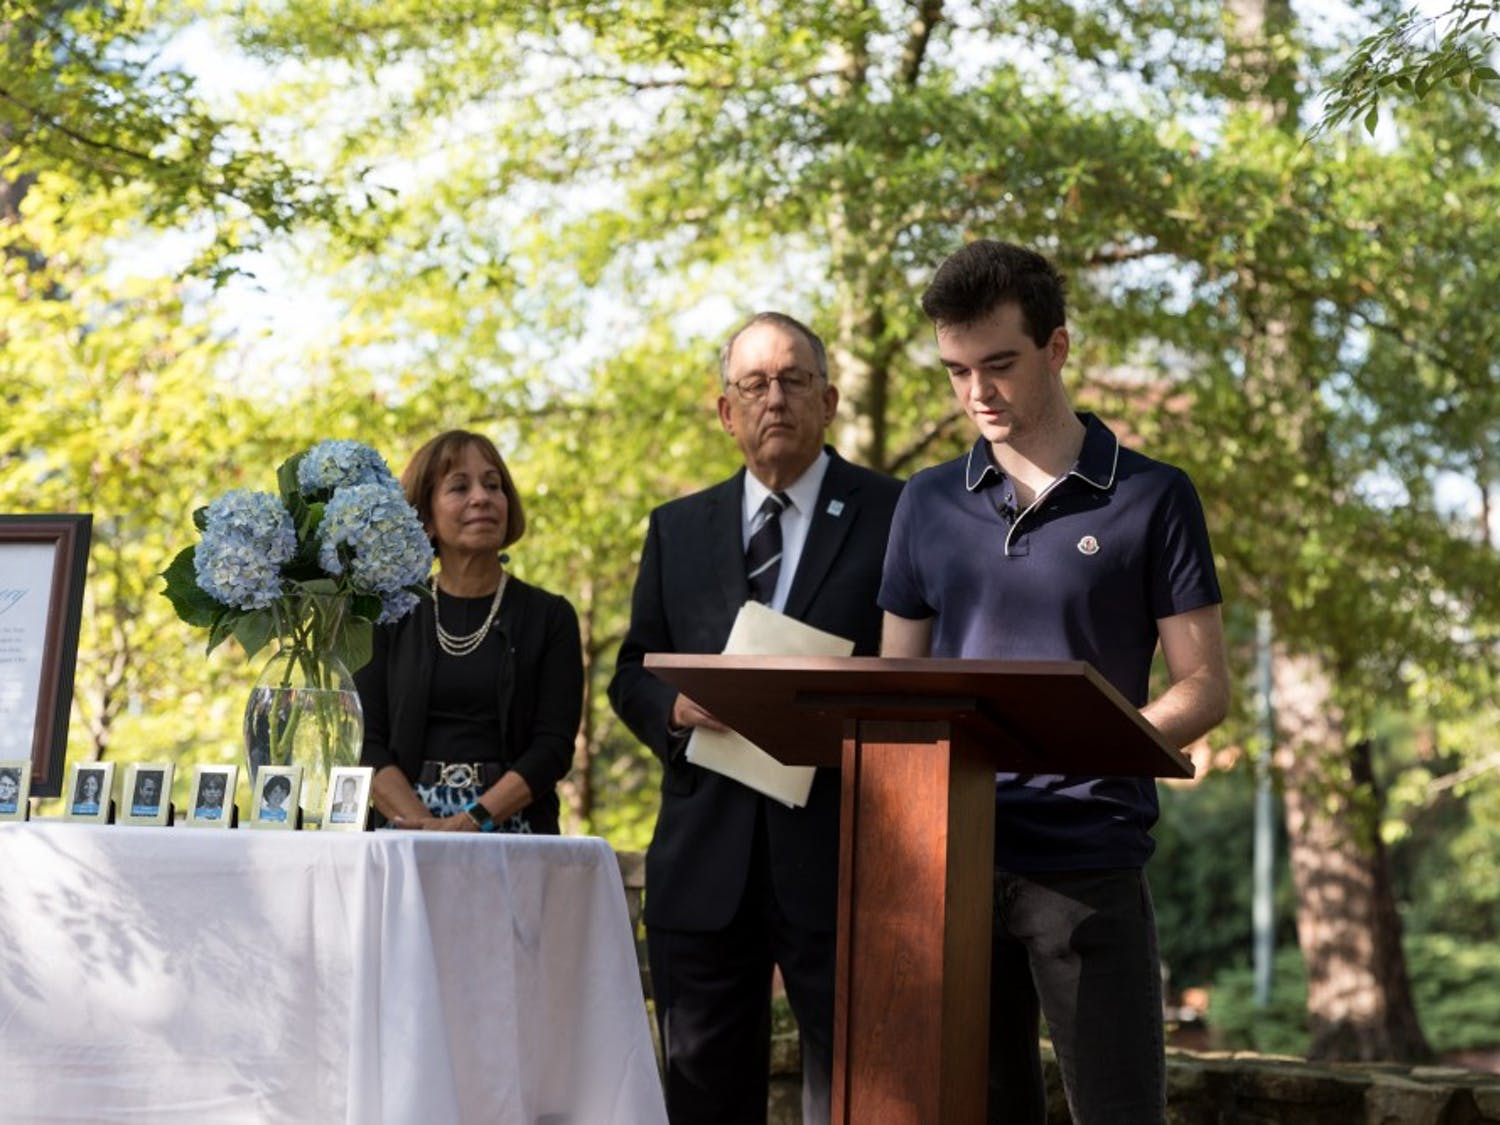 First-year student Dylan Melisaratos speaks briefly about his uncle, Chirstopher Quackenbush, who was a victim in the 9/11 terrorist attack in Memorial Garden near the Alumni Center on the morning ofTuesday, September 11, 2018.